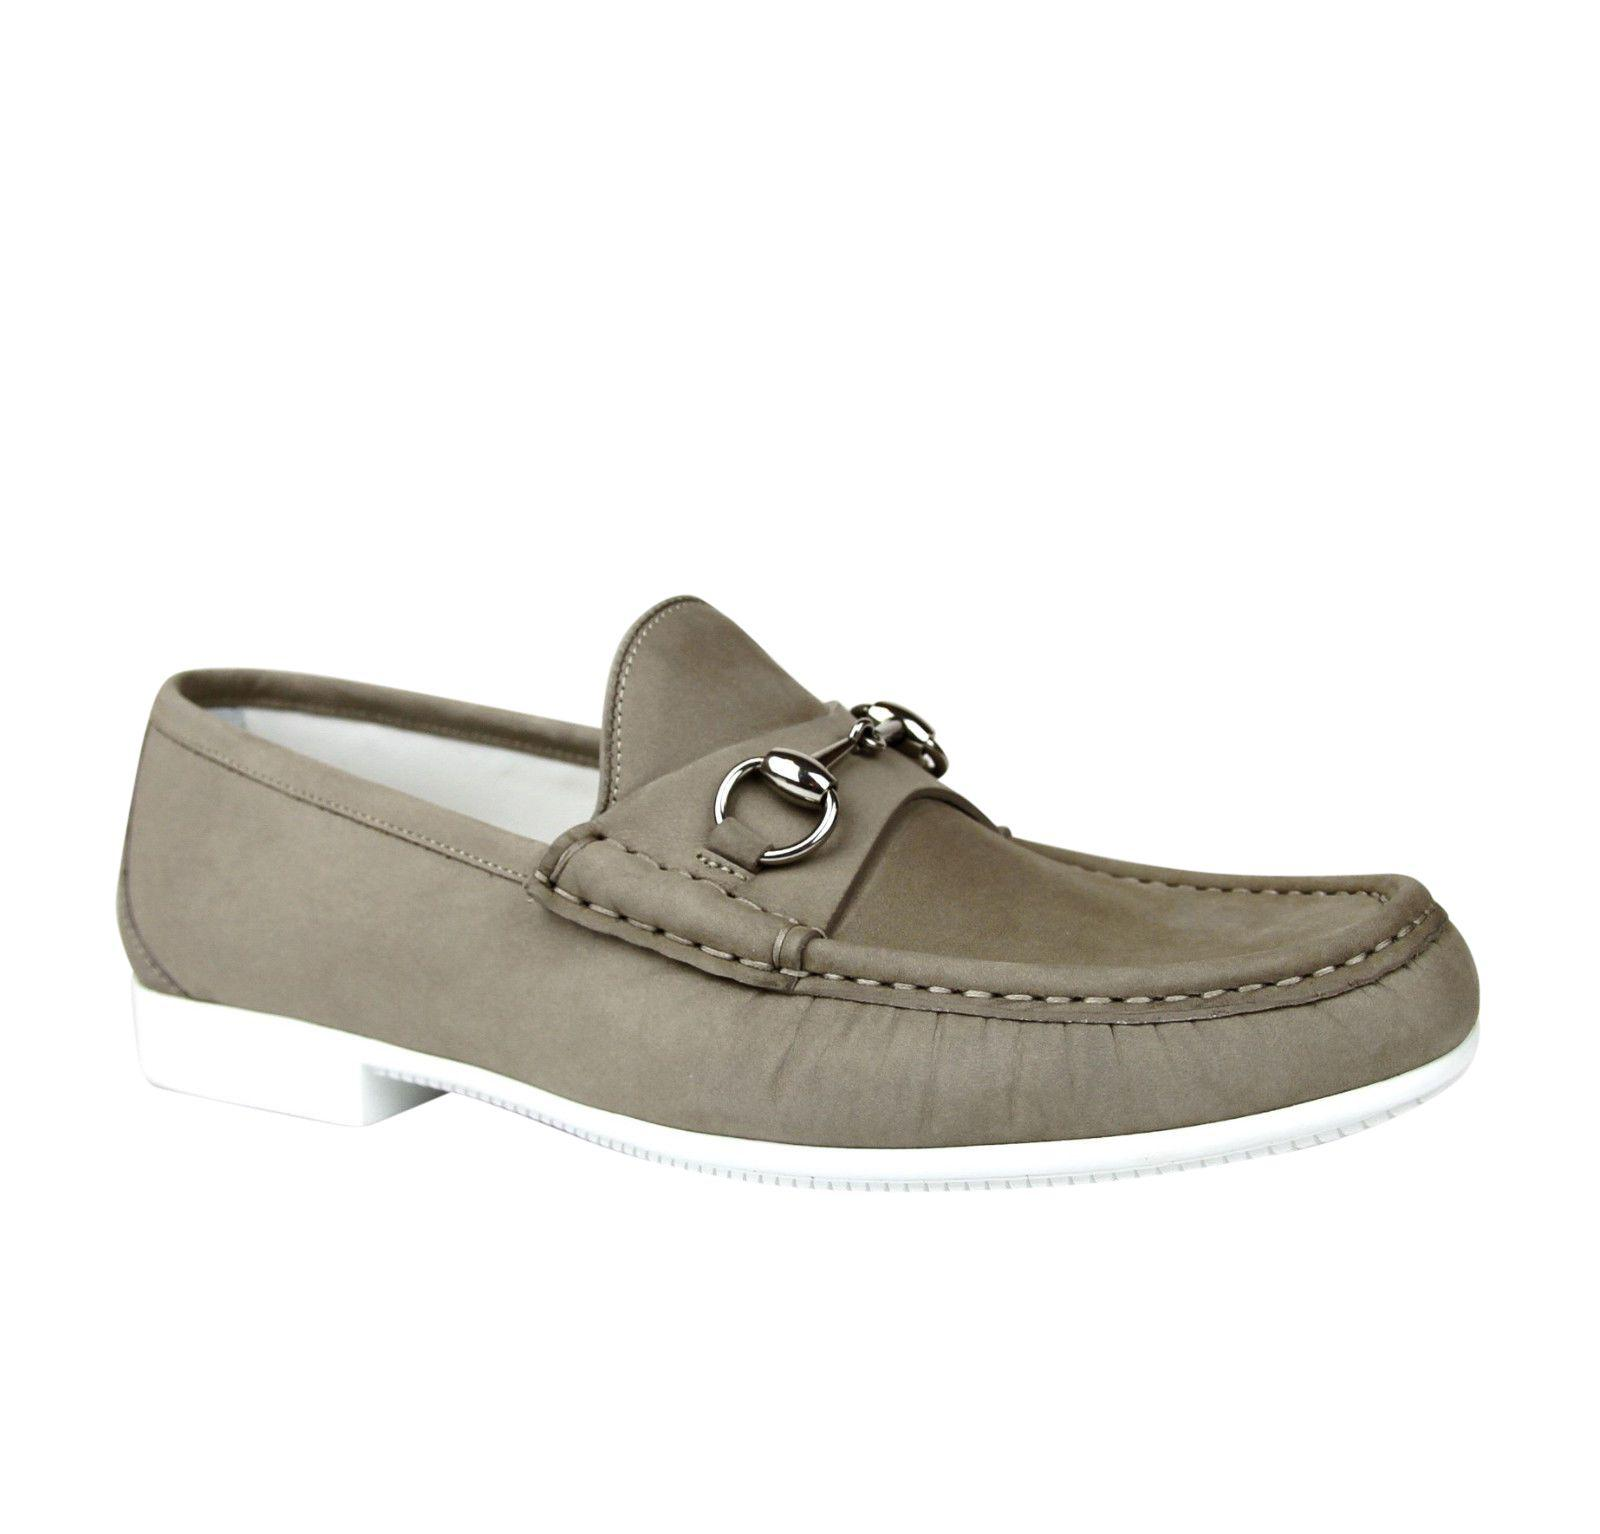 8cff98977f961 Lyst - Gucci Moccasin Suede Horsebit Loafer 337060 Bho00 in Natural ...